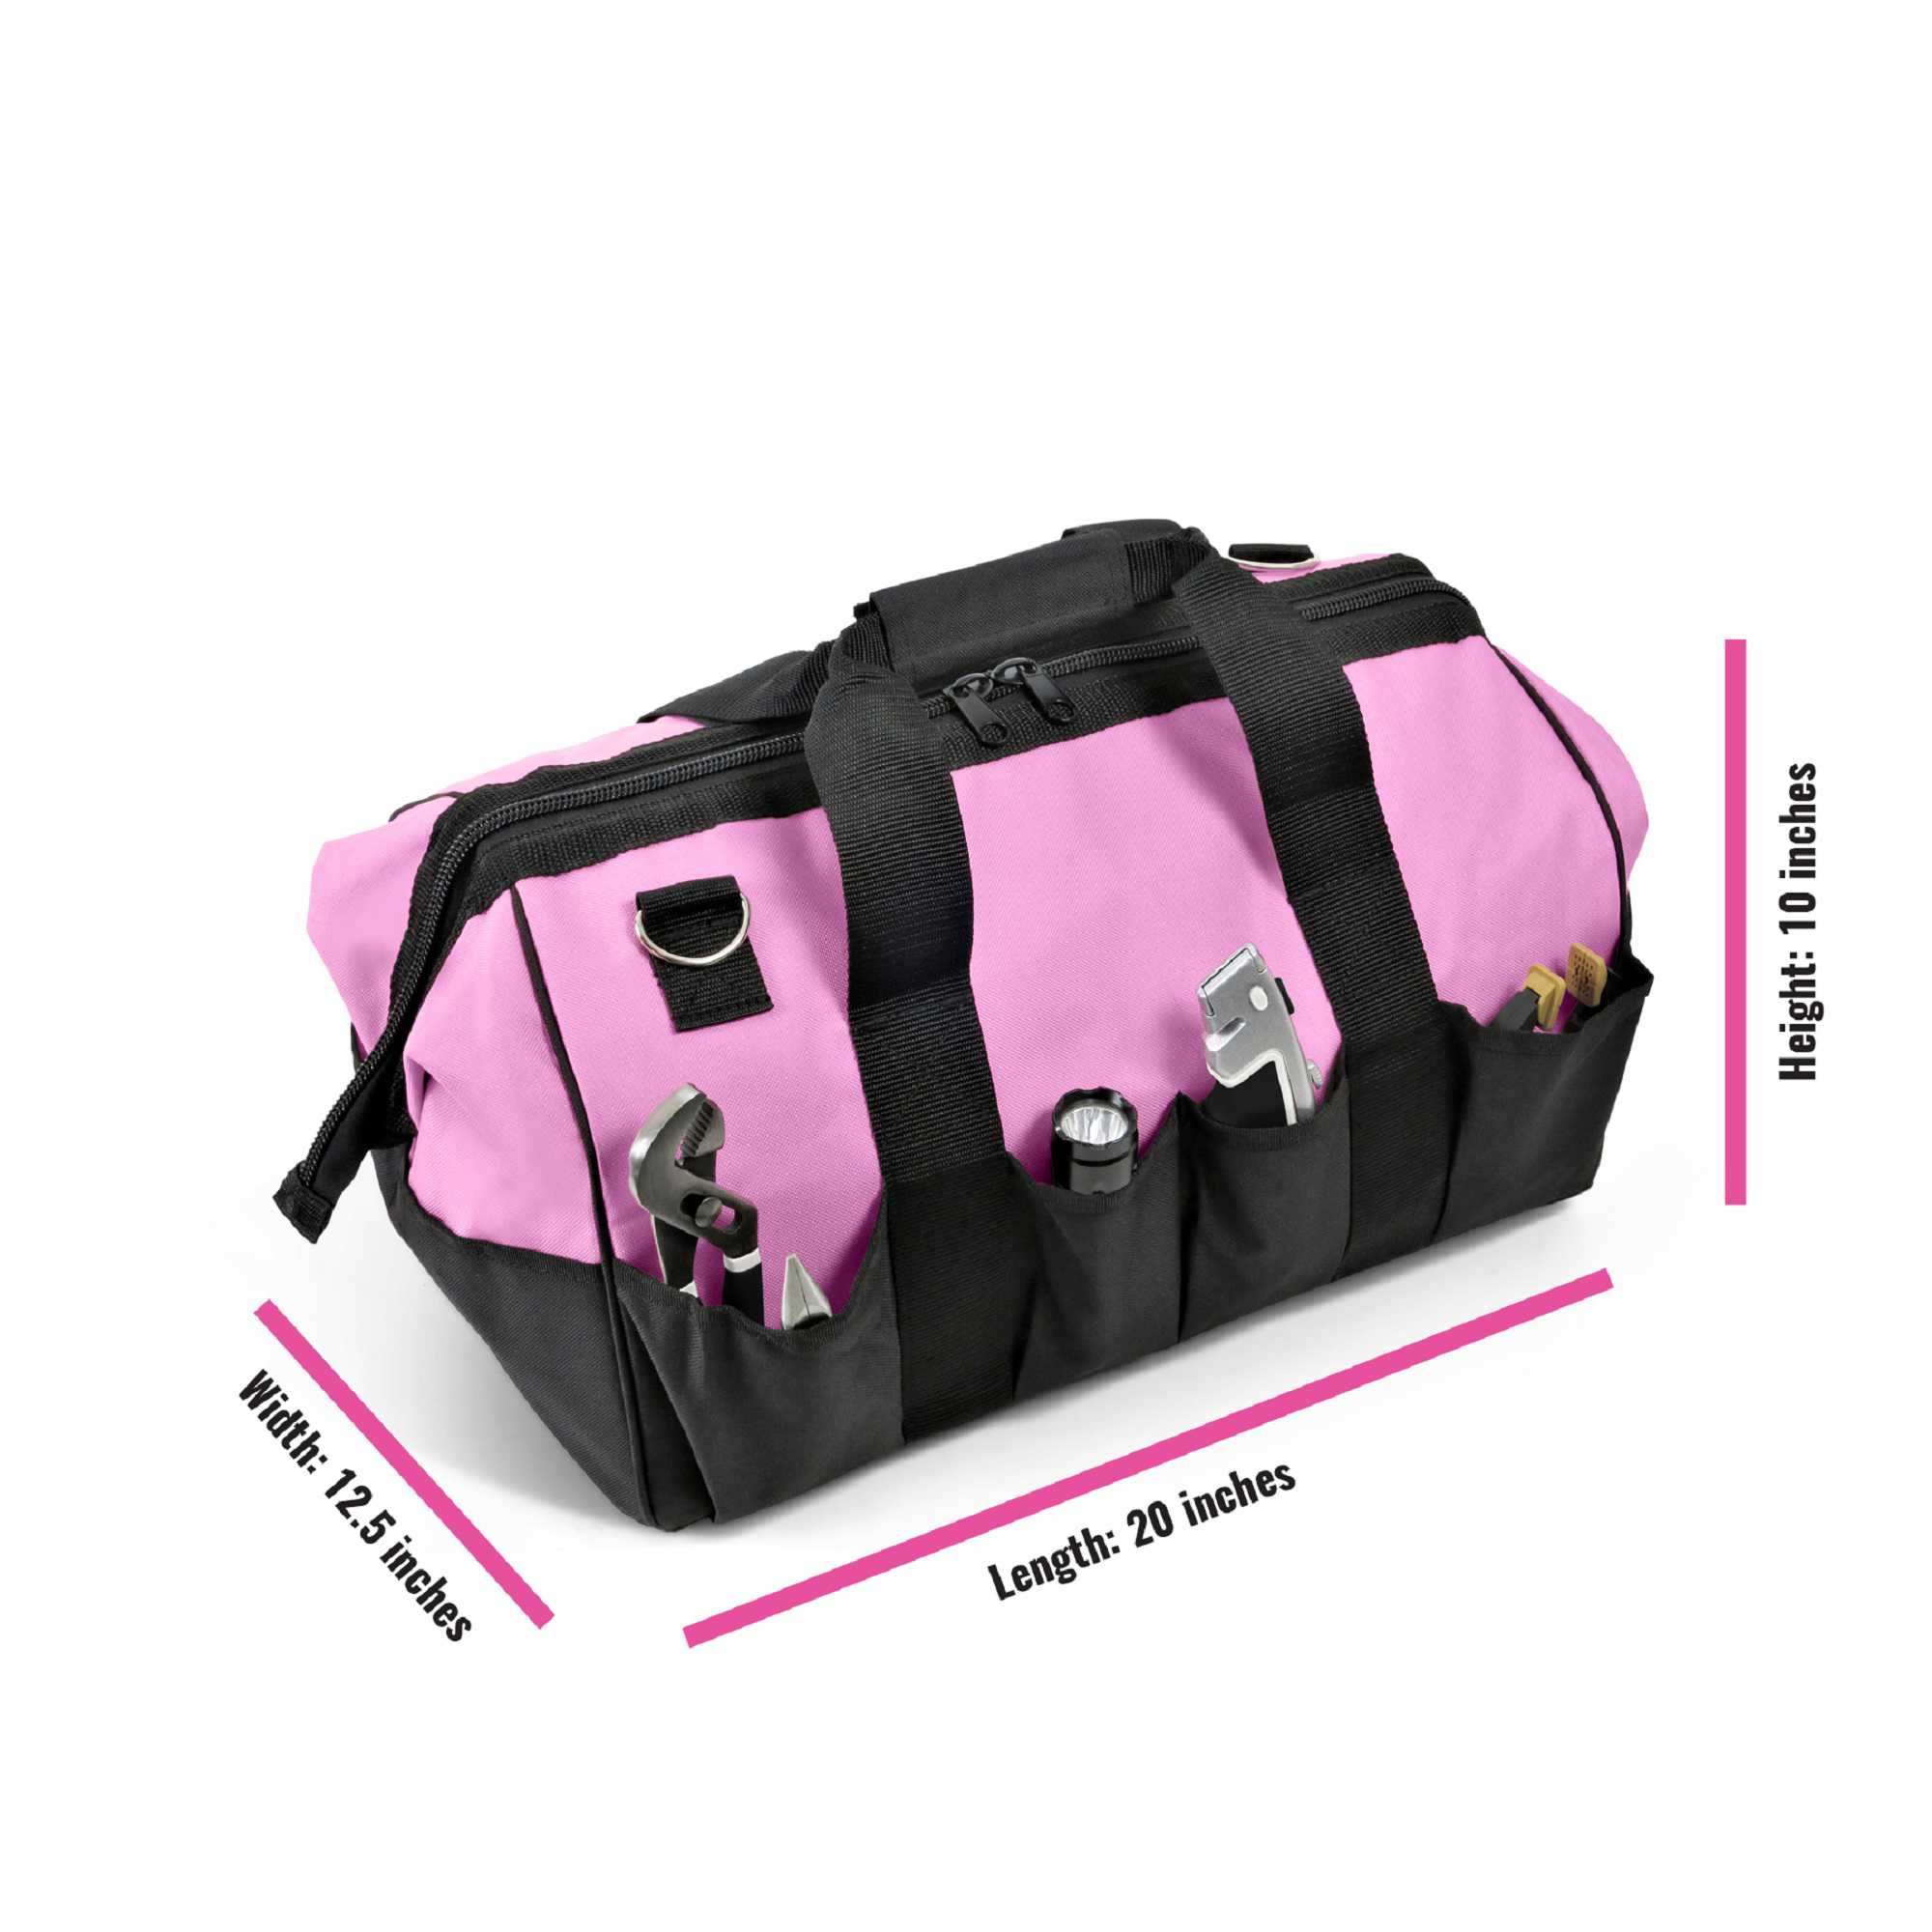 Pink Power 20' Tool Bag for Women with 28 Storage Pockets and Shoulder Strap